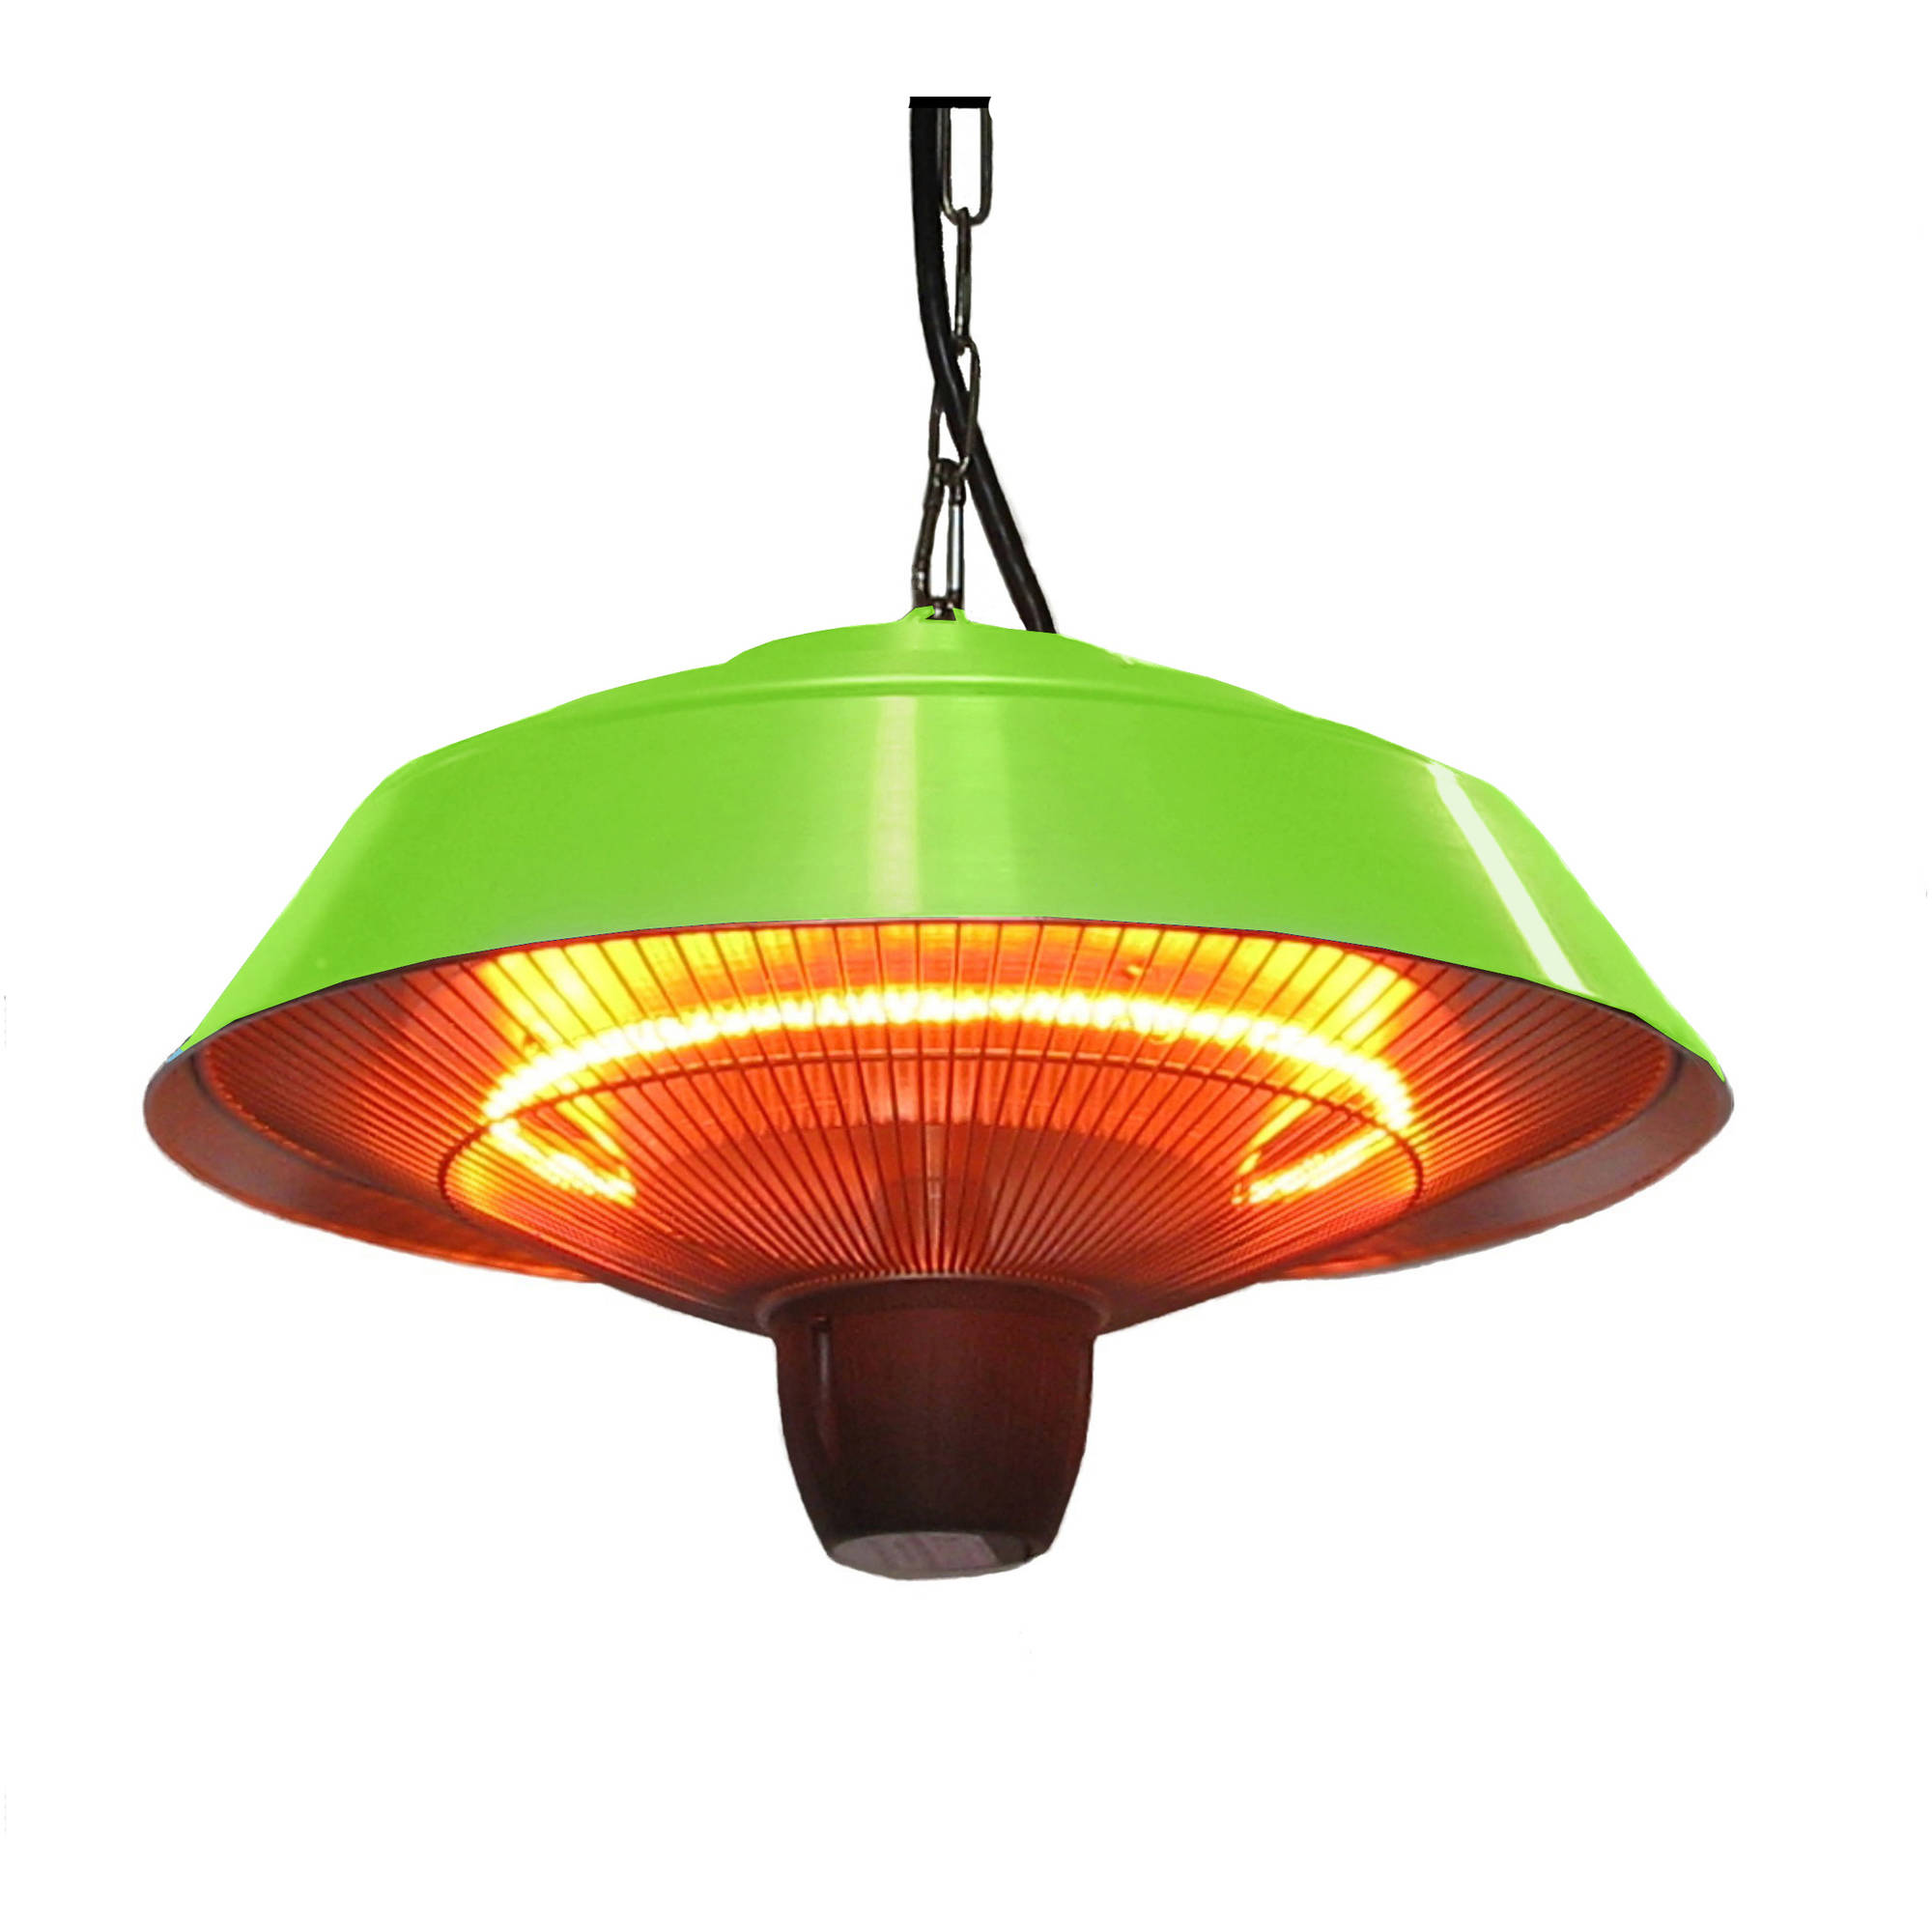 EnerG+ HEA-21523-G Hanging Infrared Electric Heater, 1500W, Green